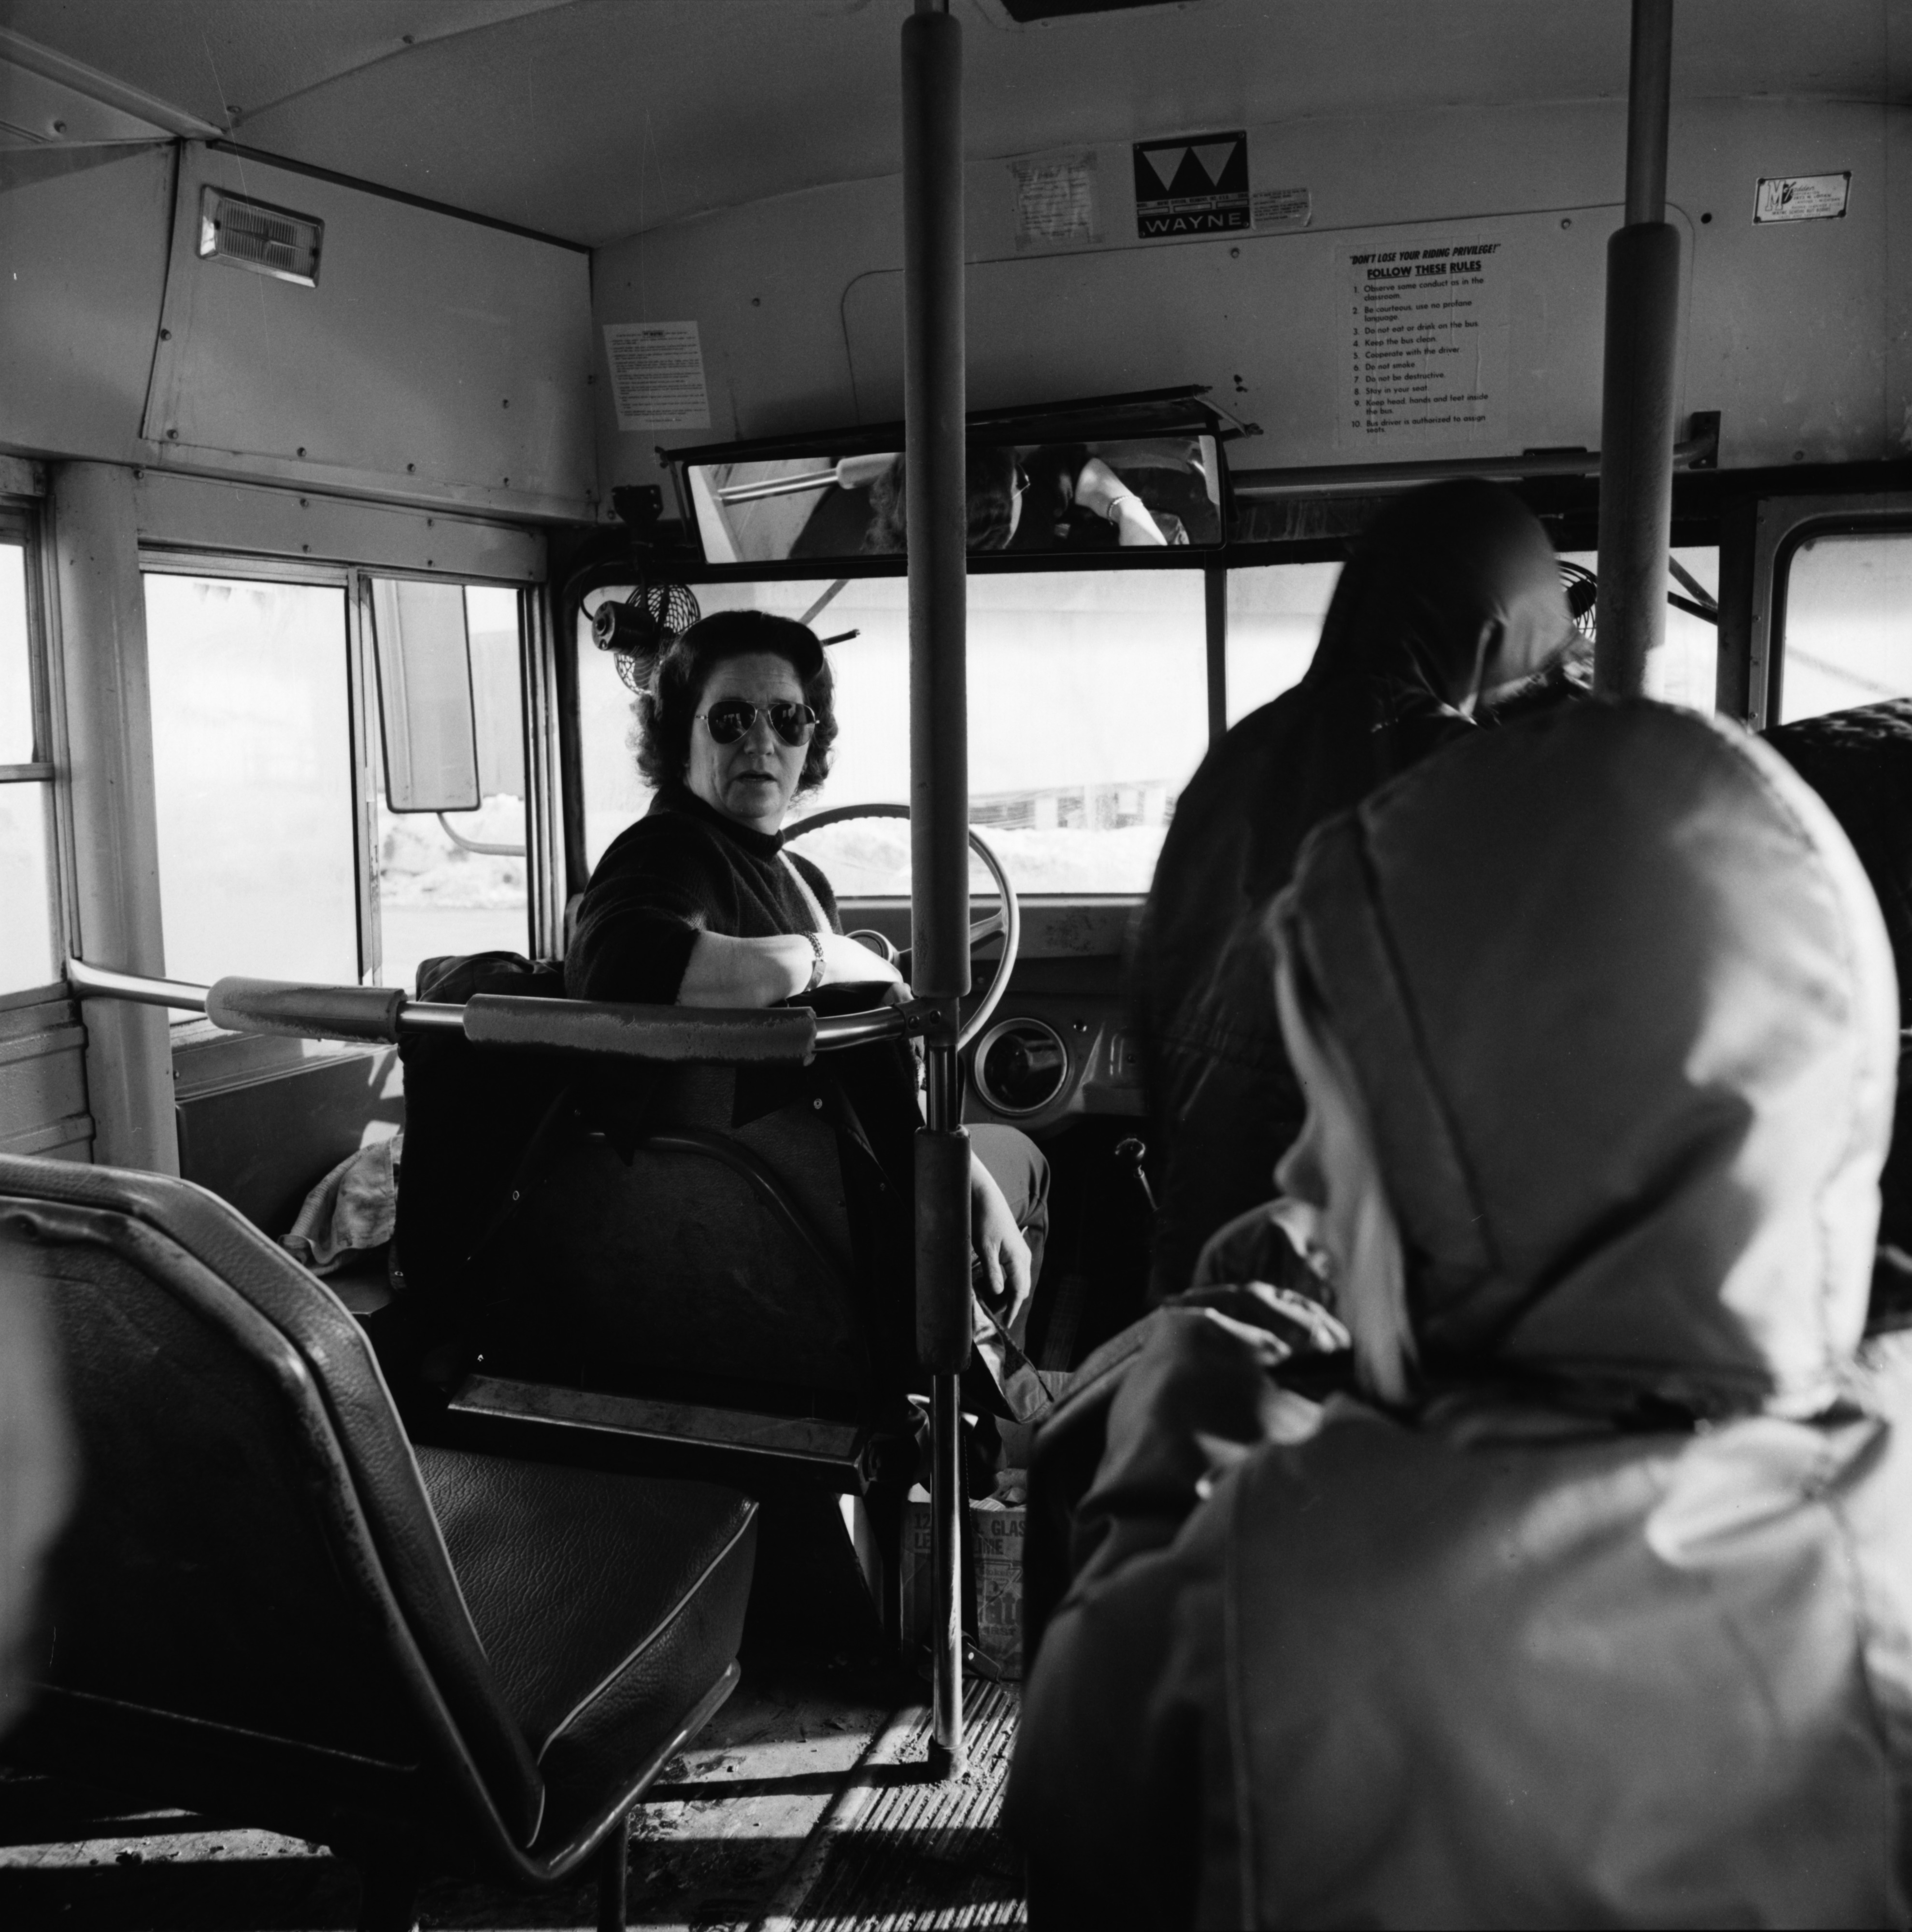 Bus Driver Shirley Duranso Lets Out Passengers, March 1975 image